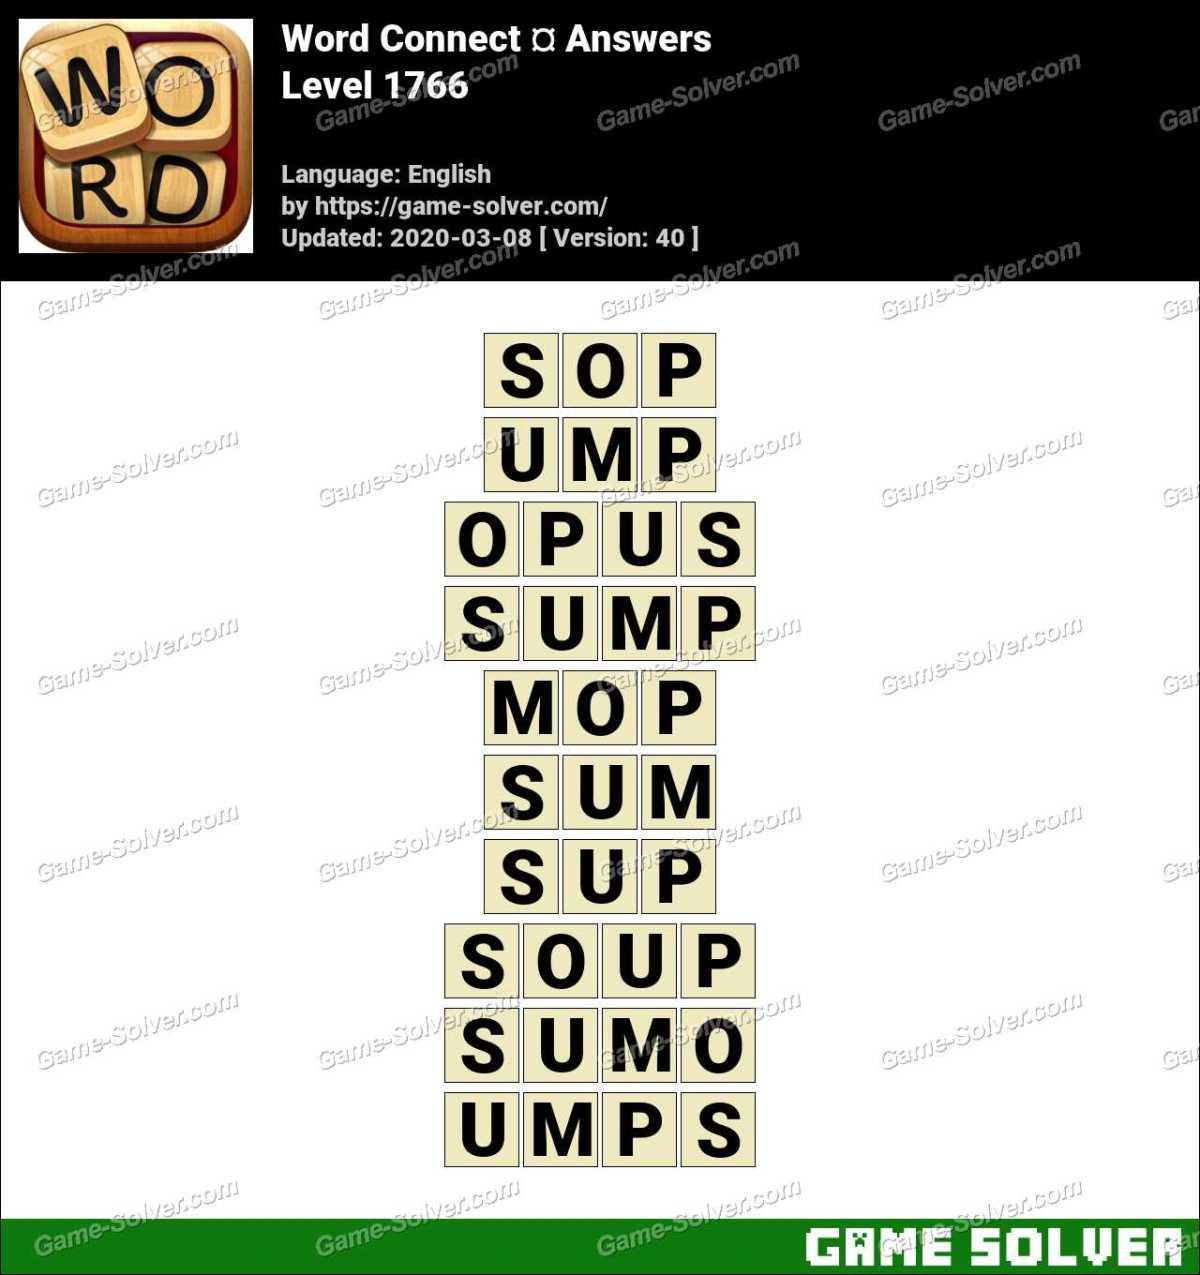 Word Connect Level 1766 Answers